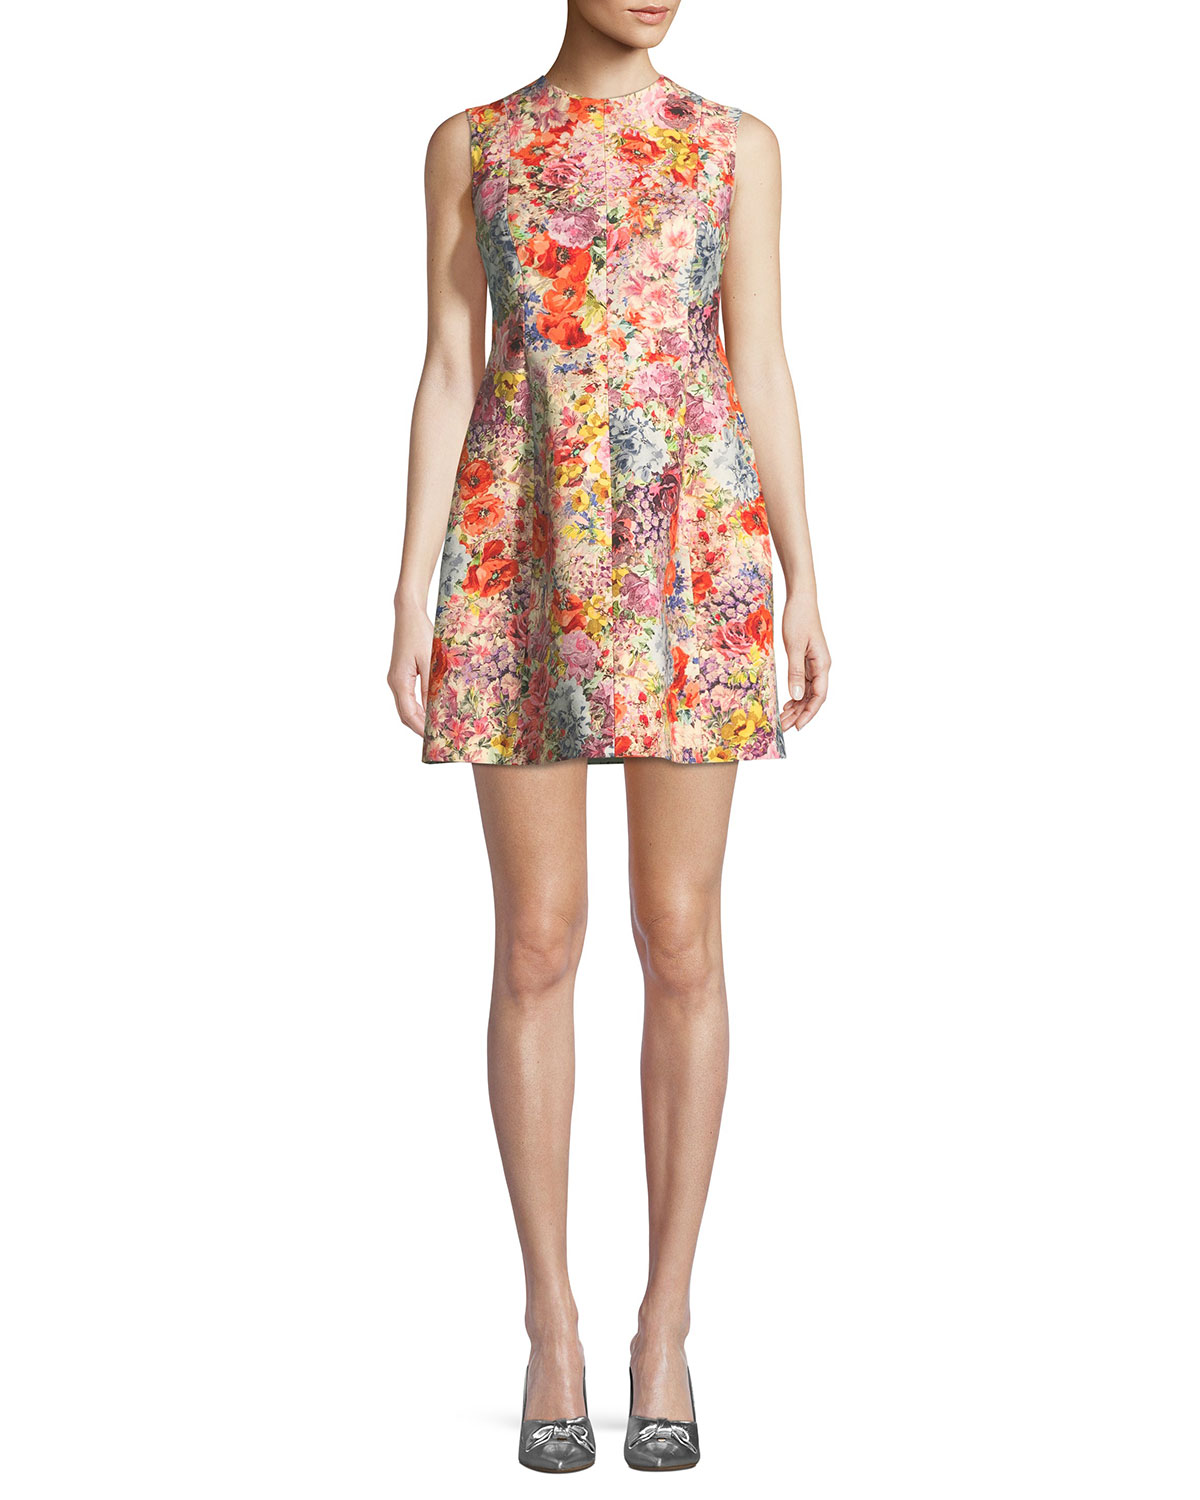 2a97a5a8 Valentino Sleeveless Crepe Fit-and-Flare Floral-Print Dress | Neiman ...